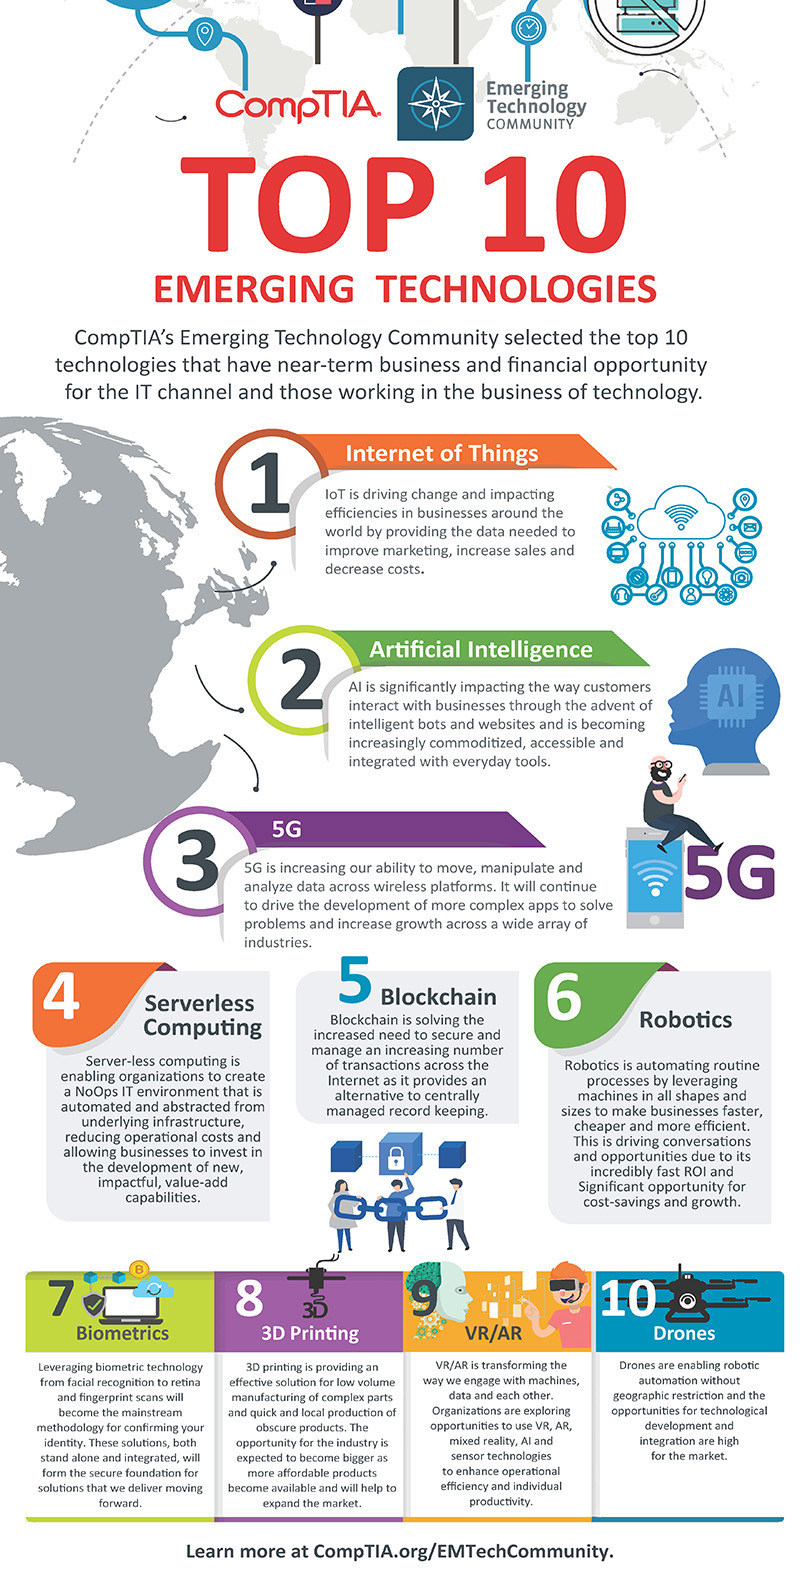 Emerging Technology Community Infographic